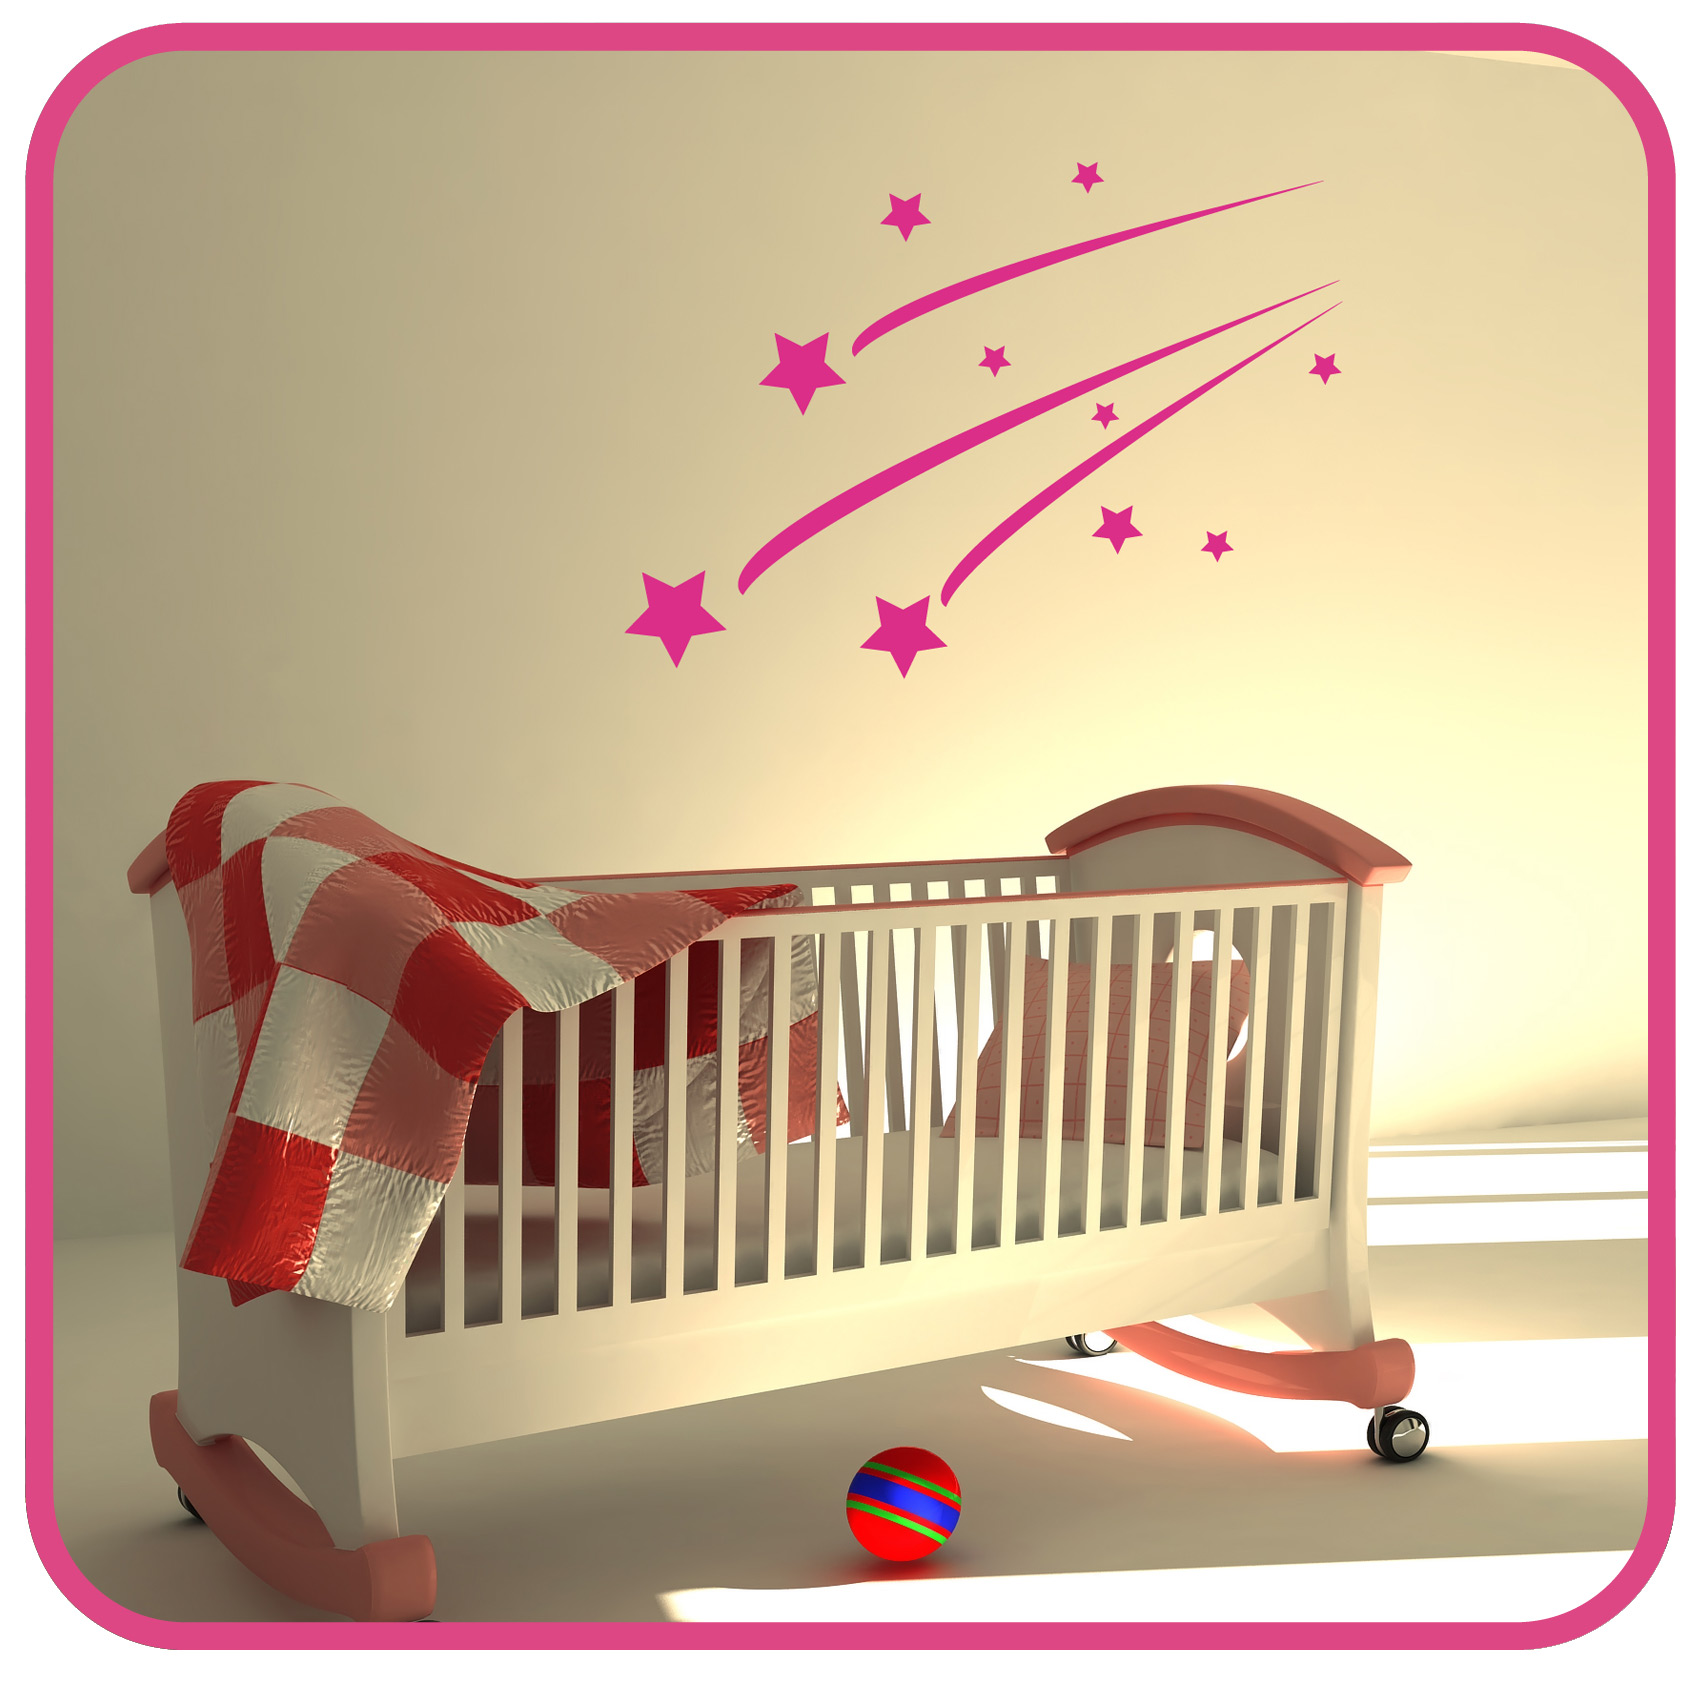 Baby bed ebay india - Download